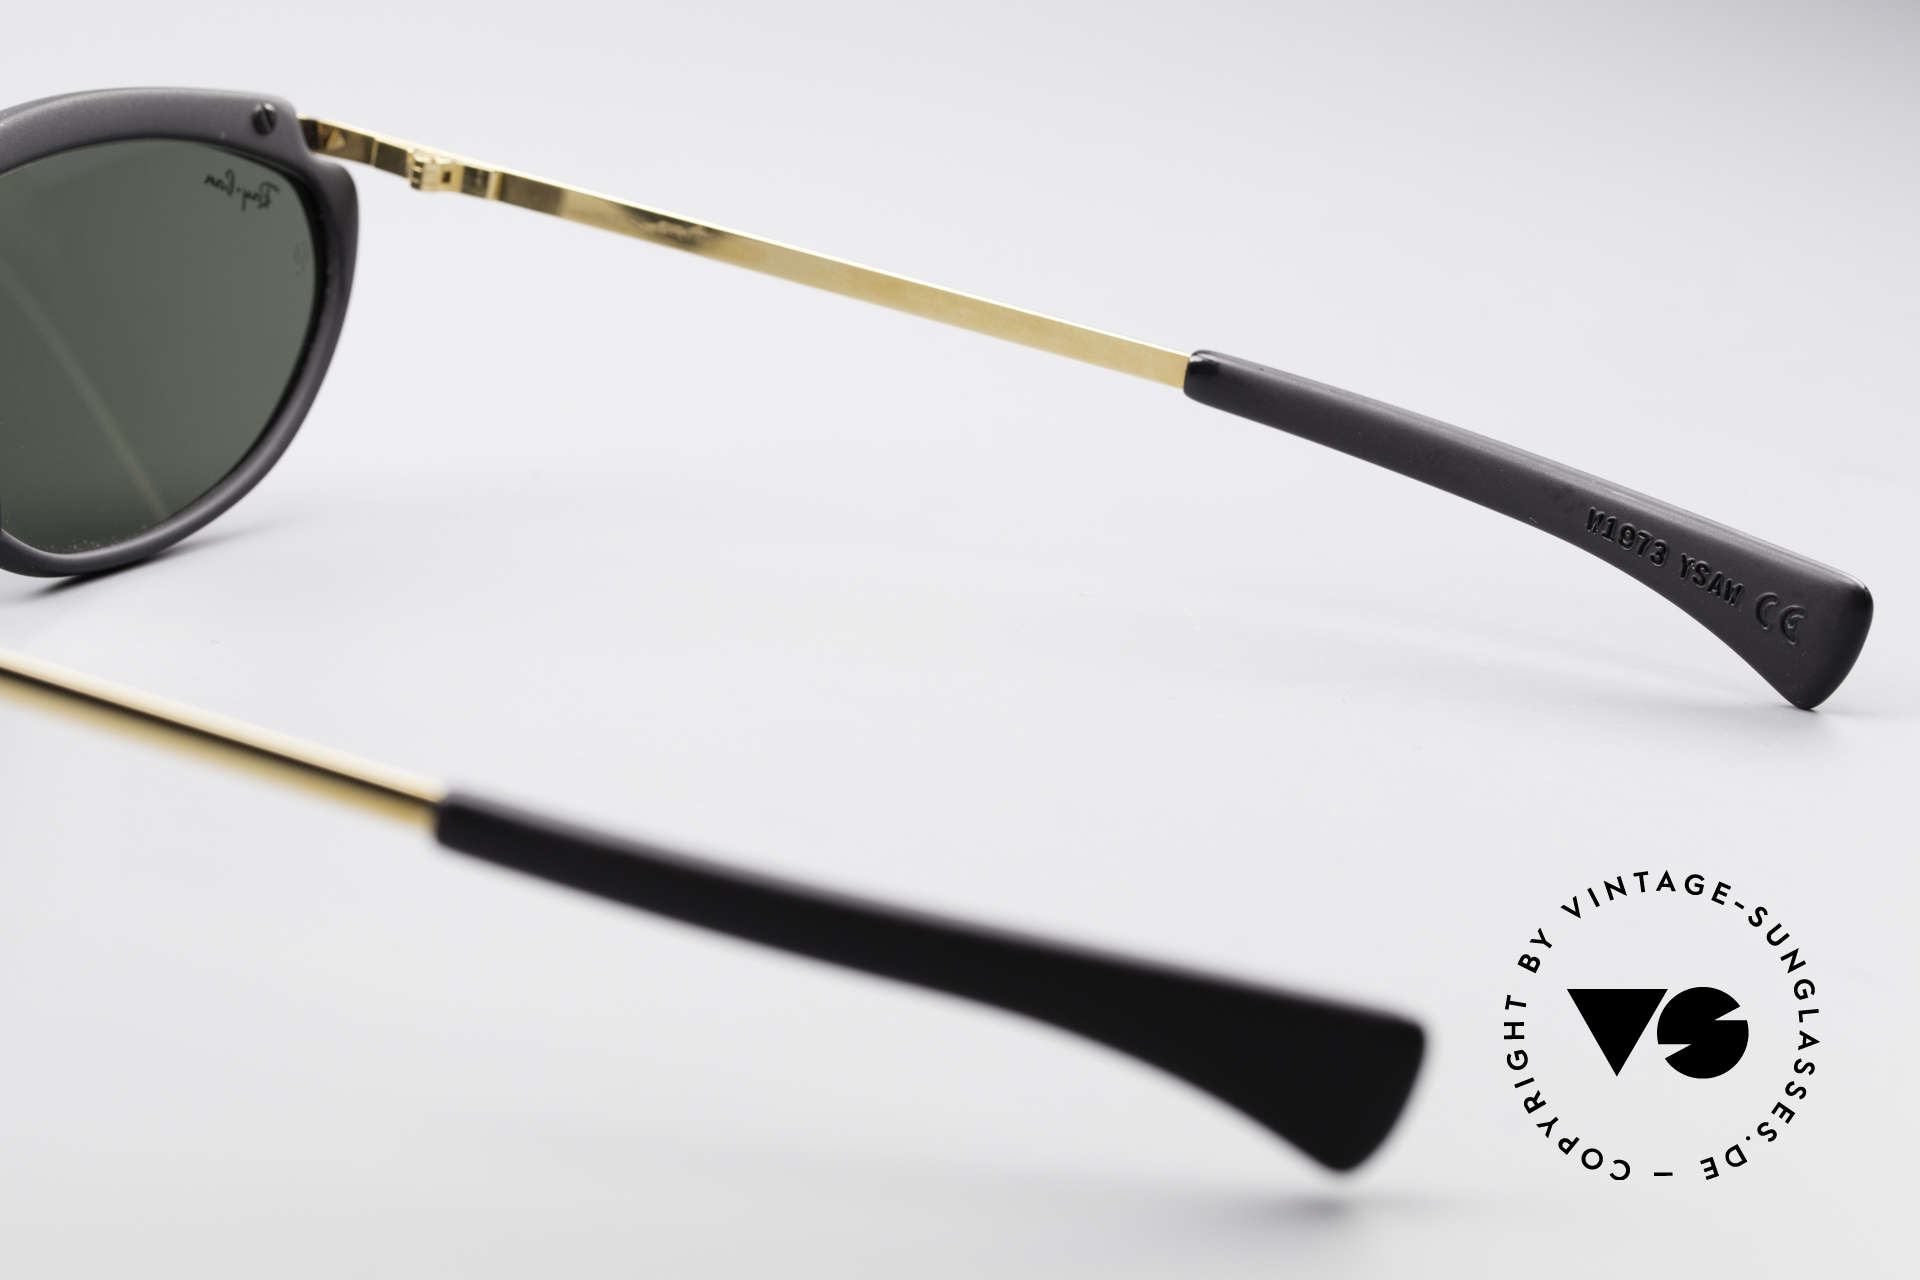 Ray Ban Olympian IV Authentic 90's B&L USA Shades, NO RETRO Ray Ban, but a rare B&L USA-Original, Made for Men and Women